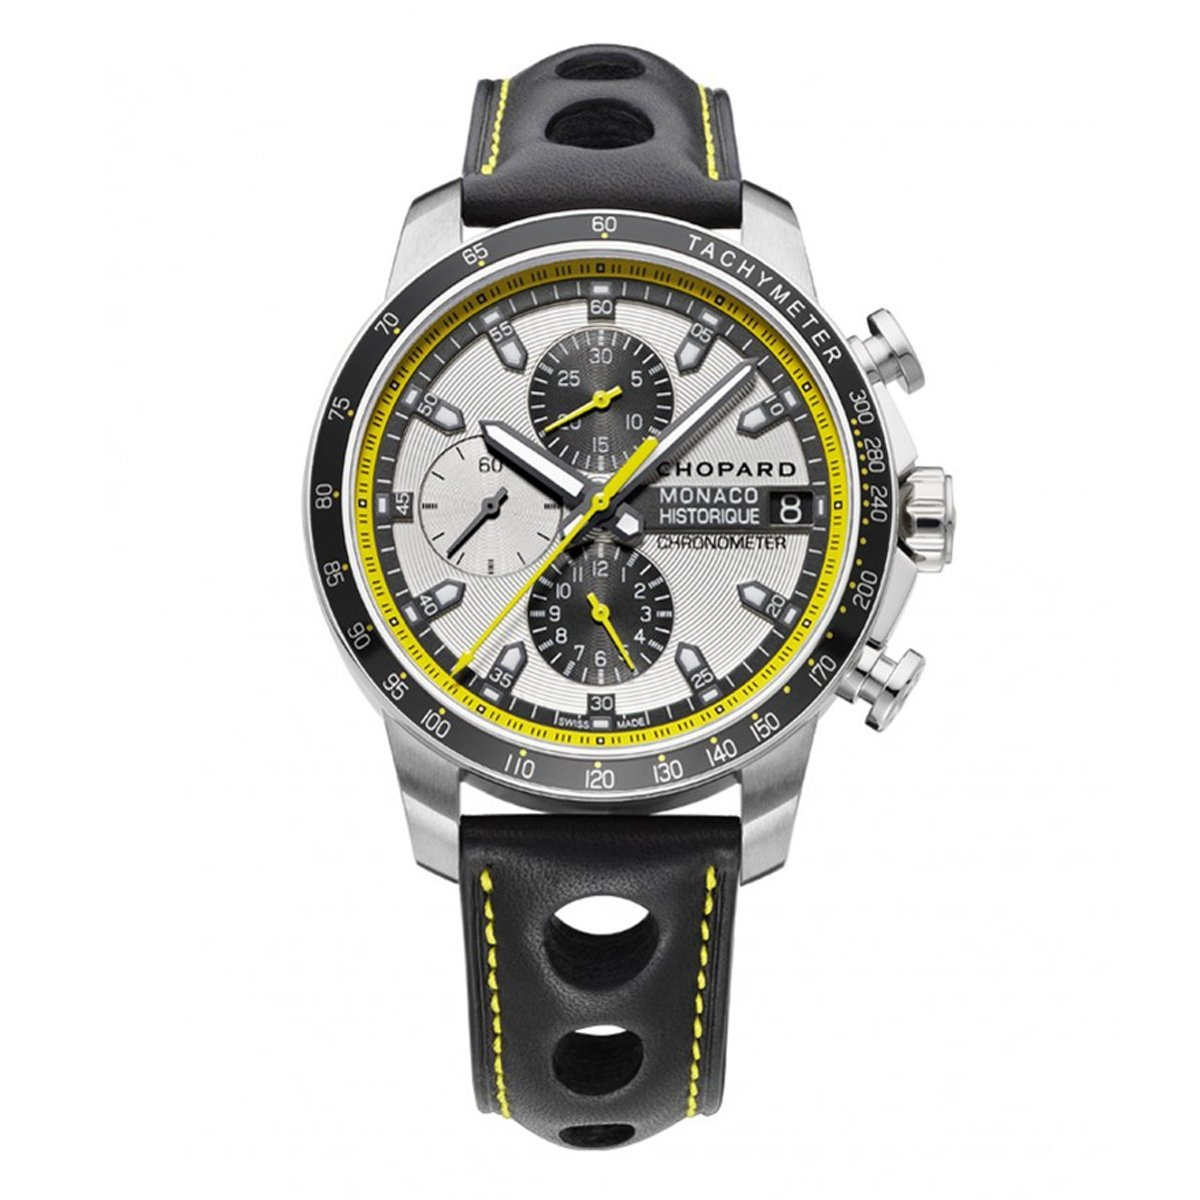 Chopard Grand Prix Monaco Historique Chronograph Men's Watch Leather - Watches & Crystals